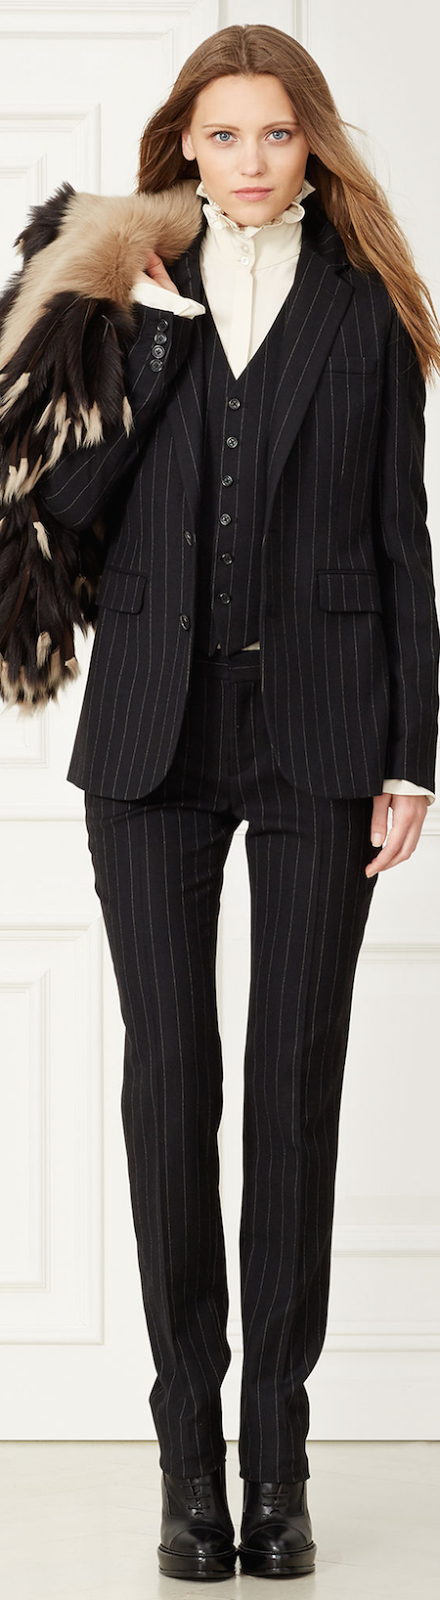 RALPH LAUREN YVETTE PINSTRIPED WOOL JACKET